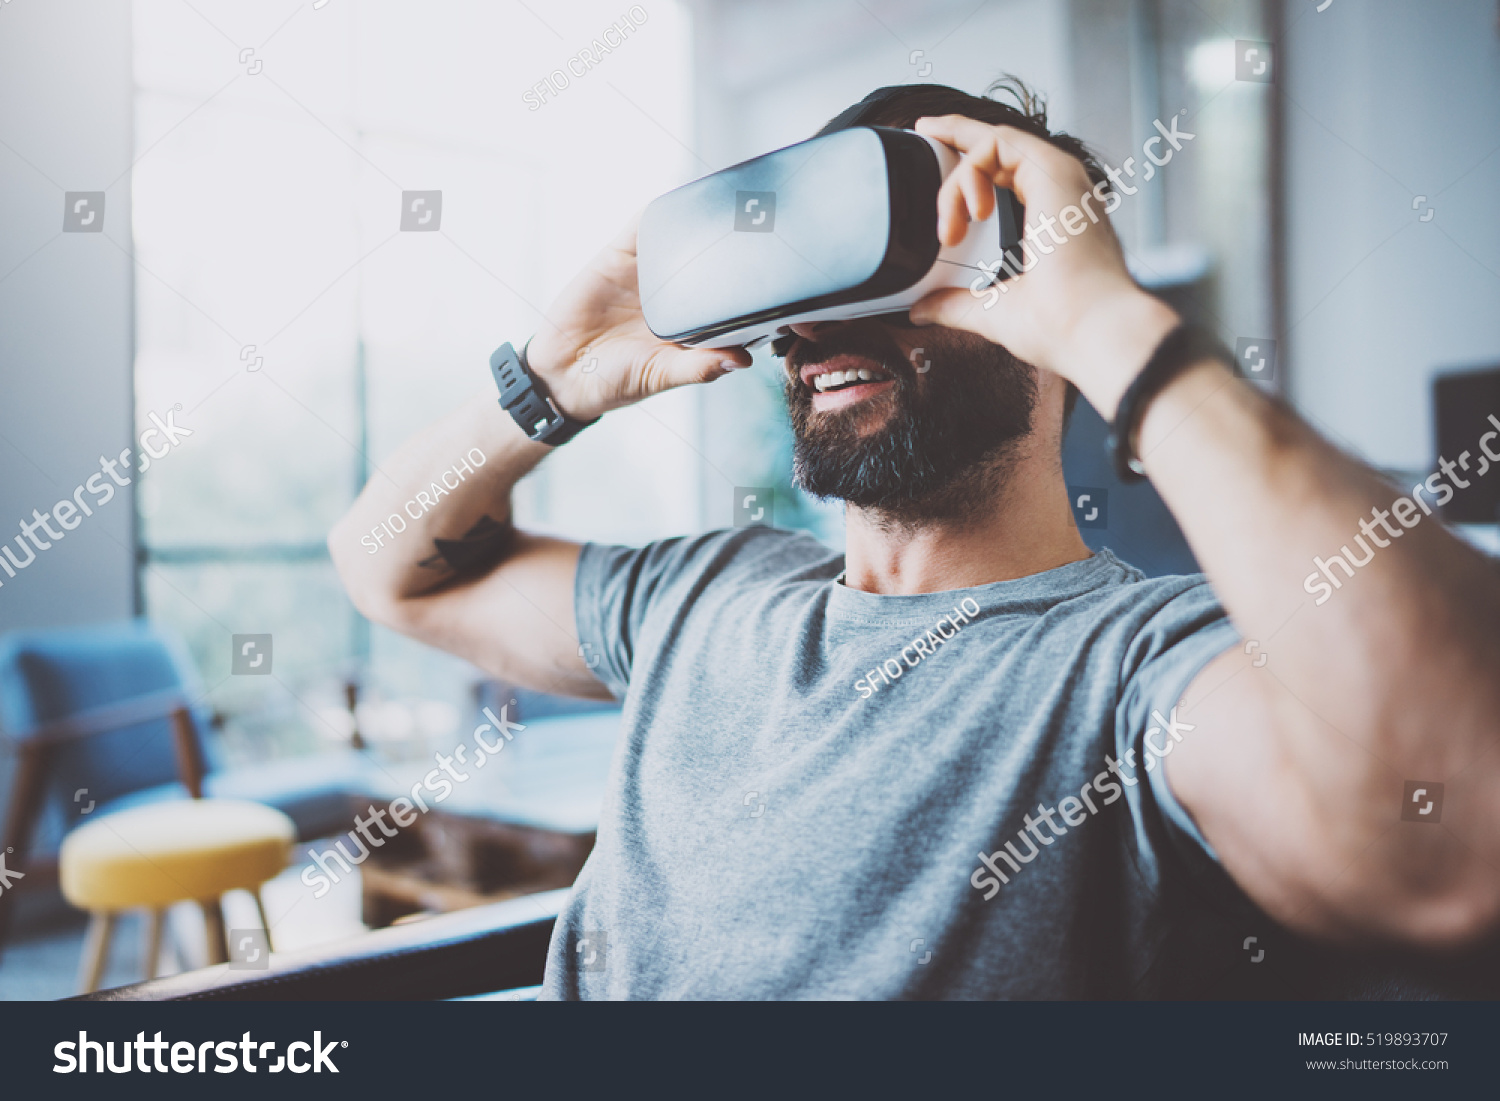 Bearded man wearing virtual reality goggles in modern coworking studio. Smartphone using with VR headset. Horizontal, blurred